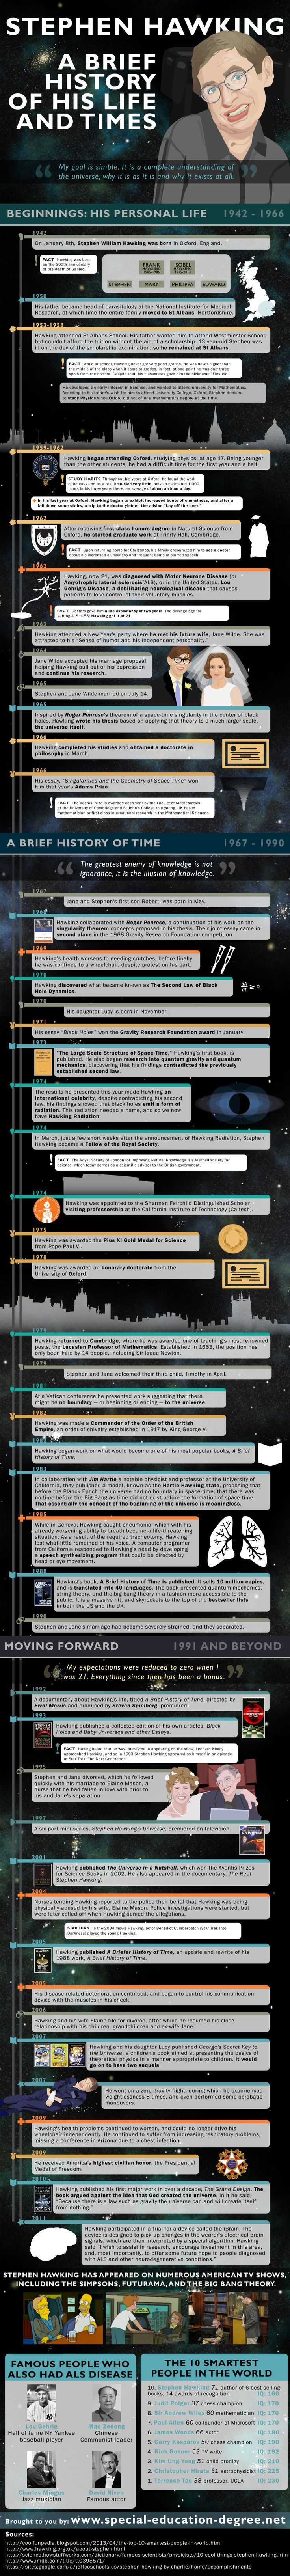 Stephen Hawking: A Brief History of His Life {Infographic}